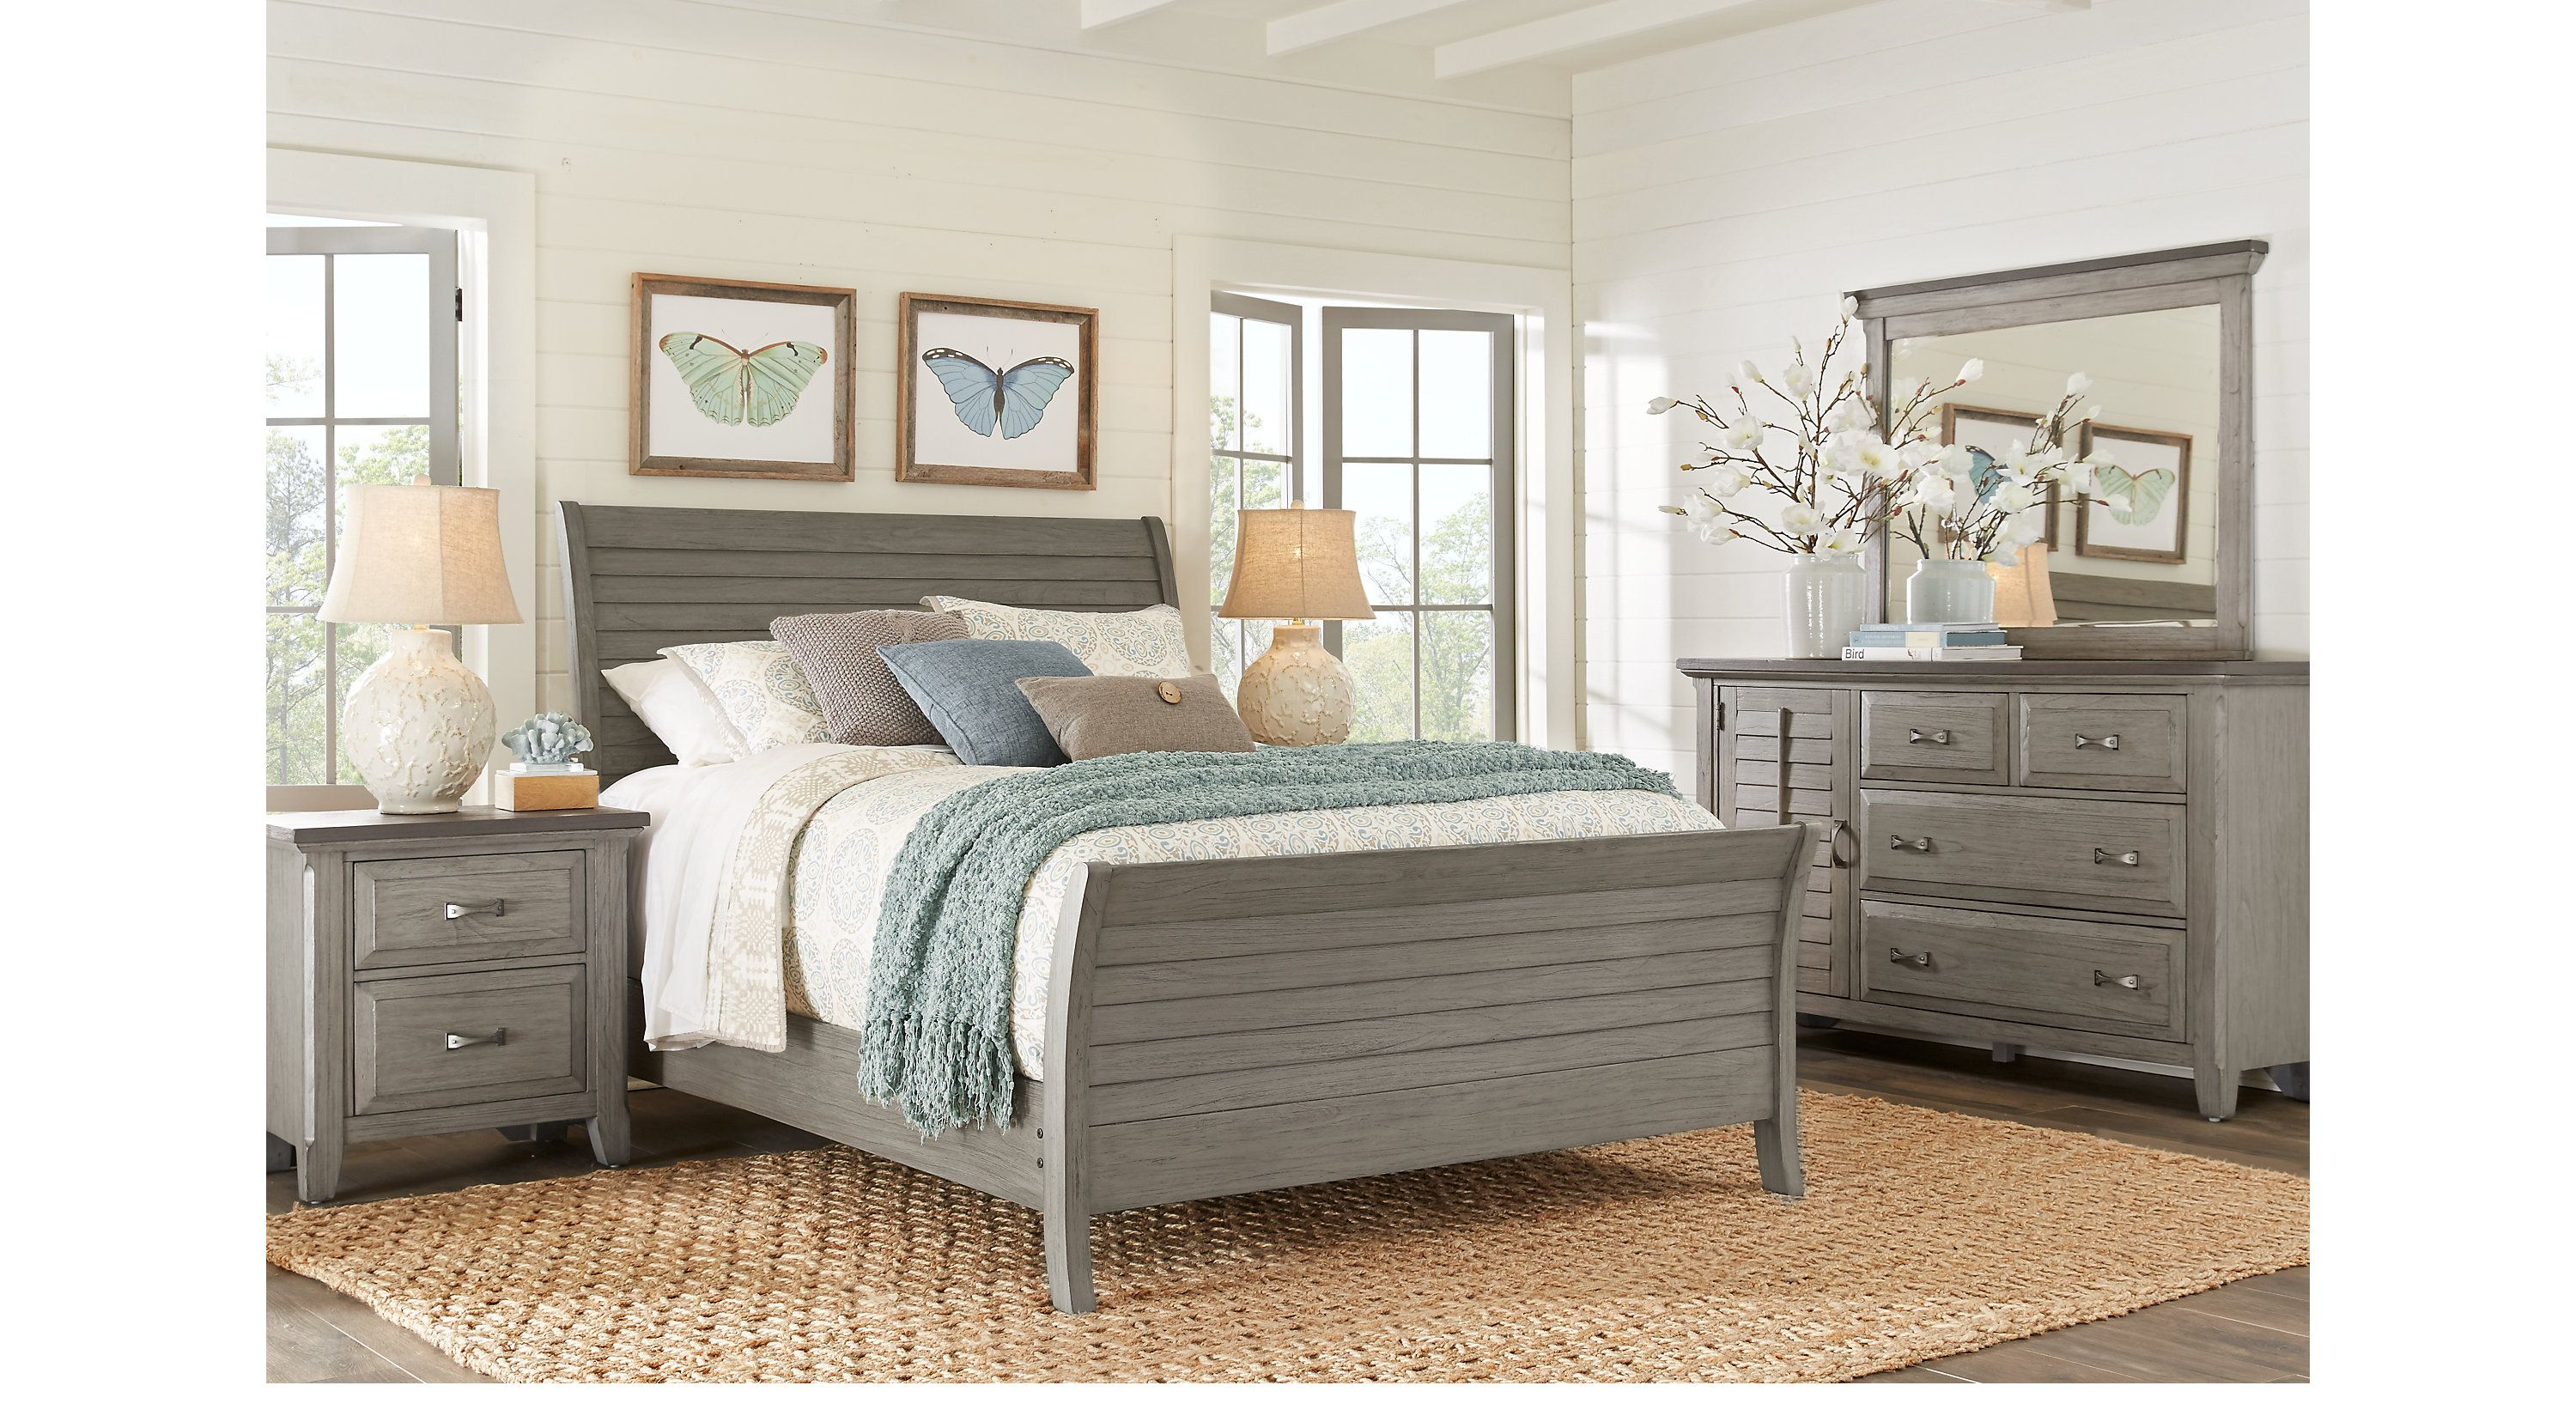 Nantucket Breeze Gray 5 Pc Queen Sleigh Bedroom  Queen